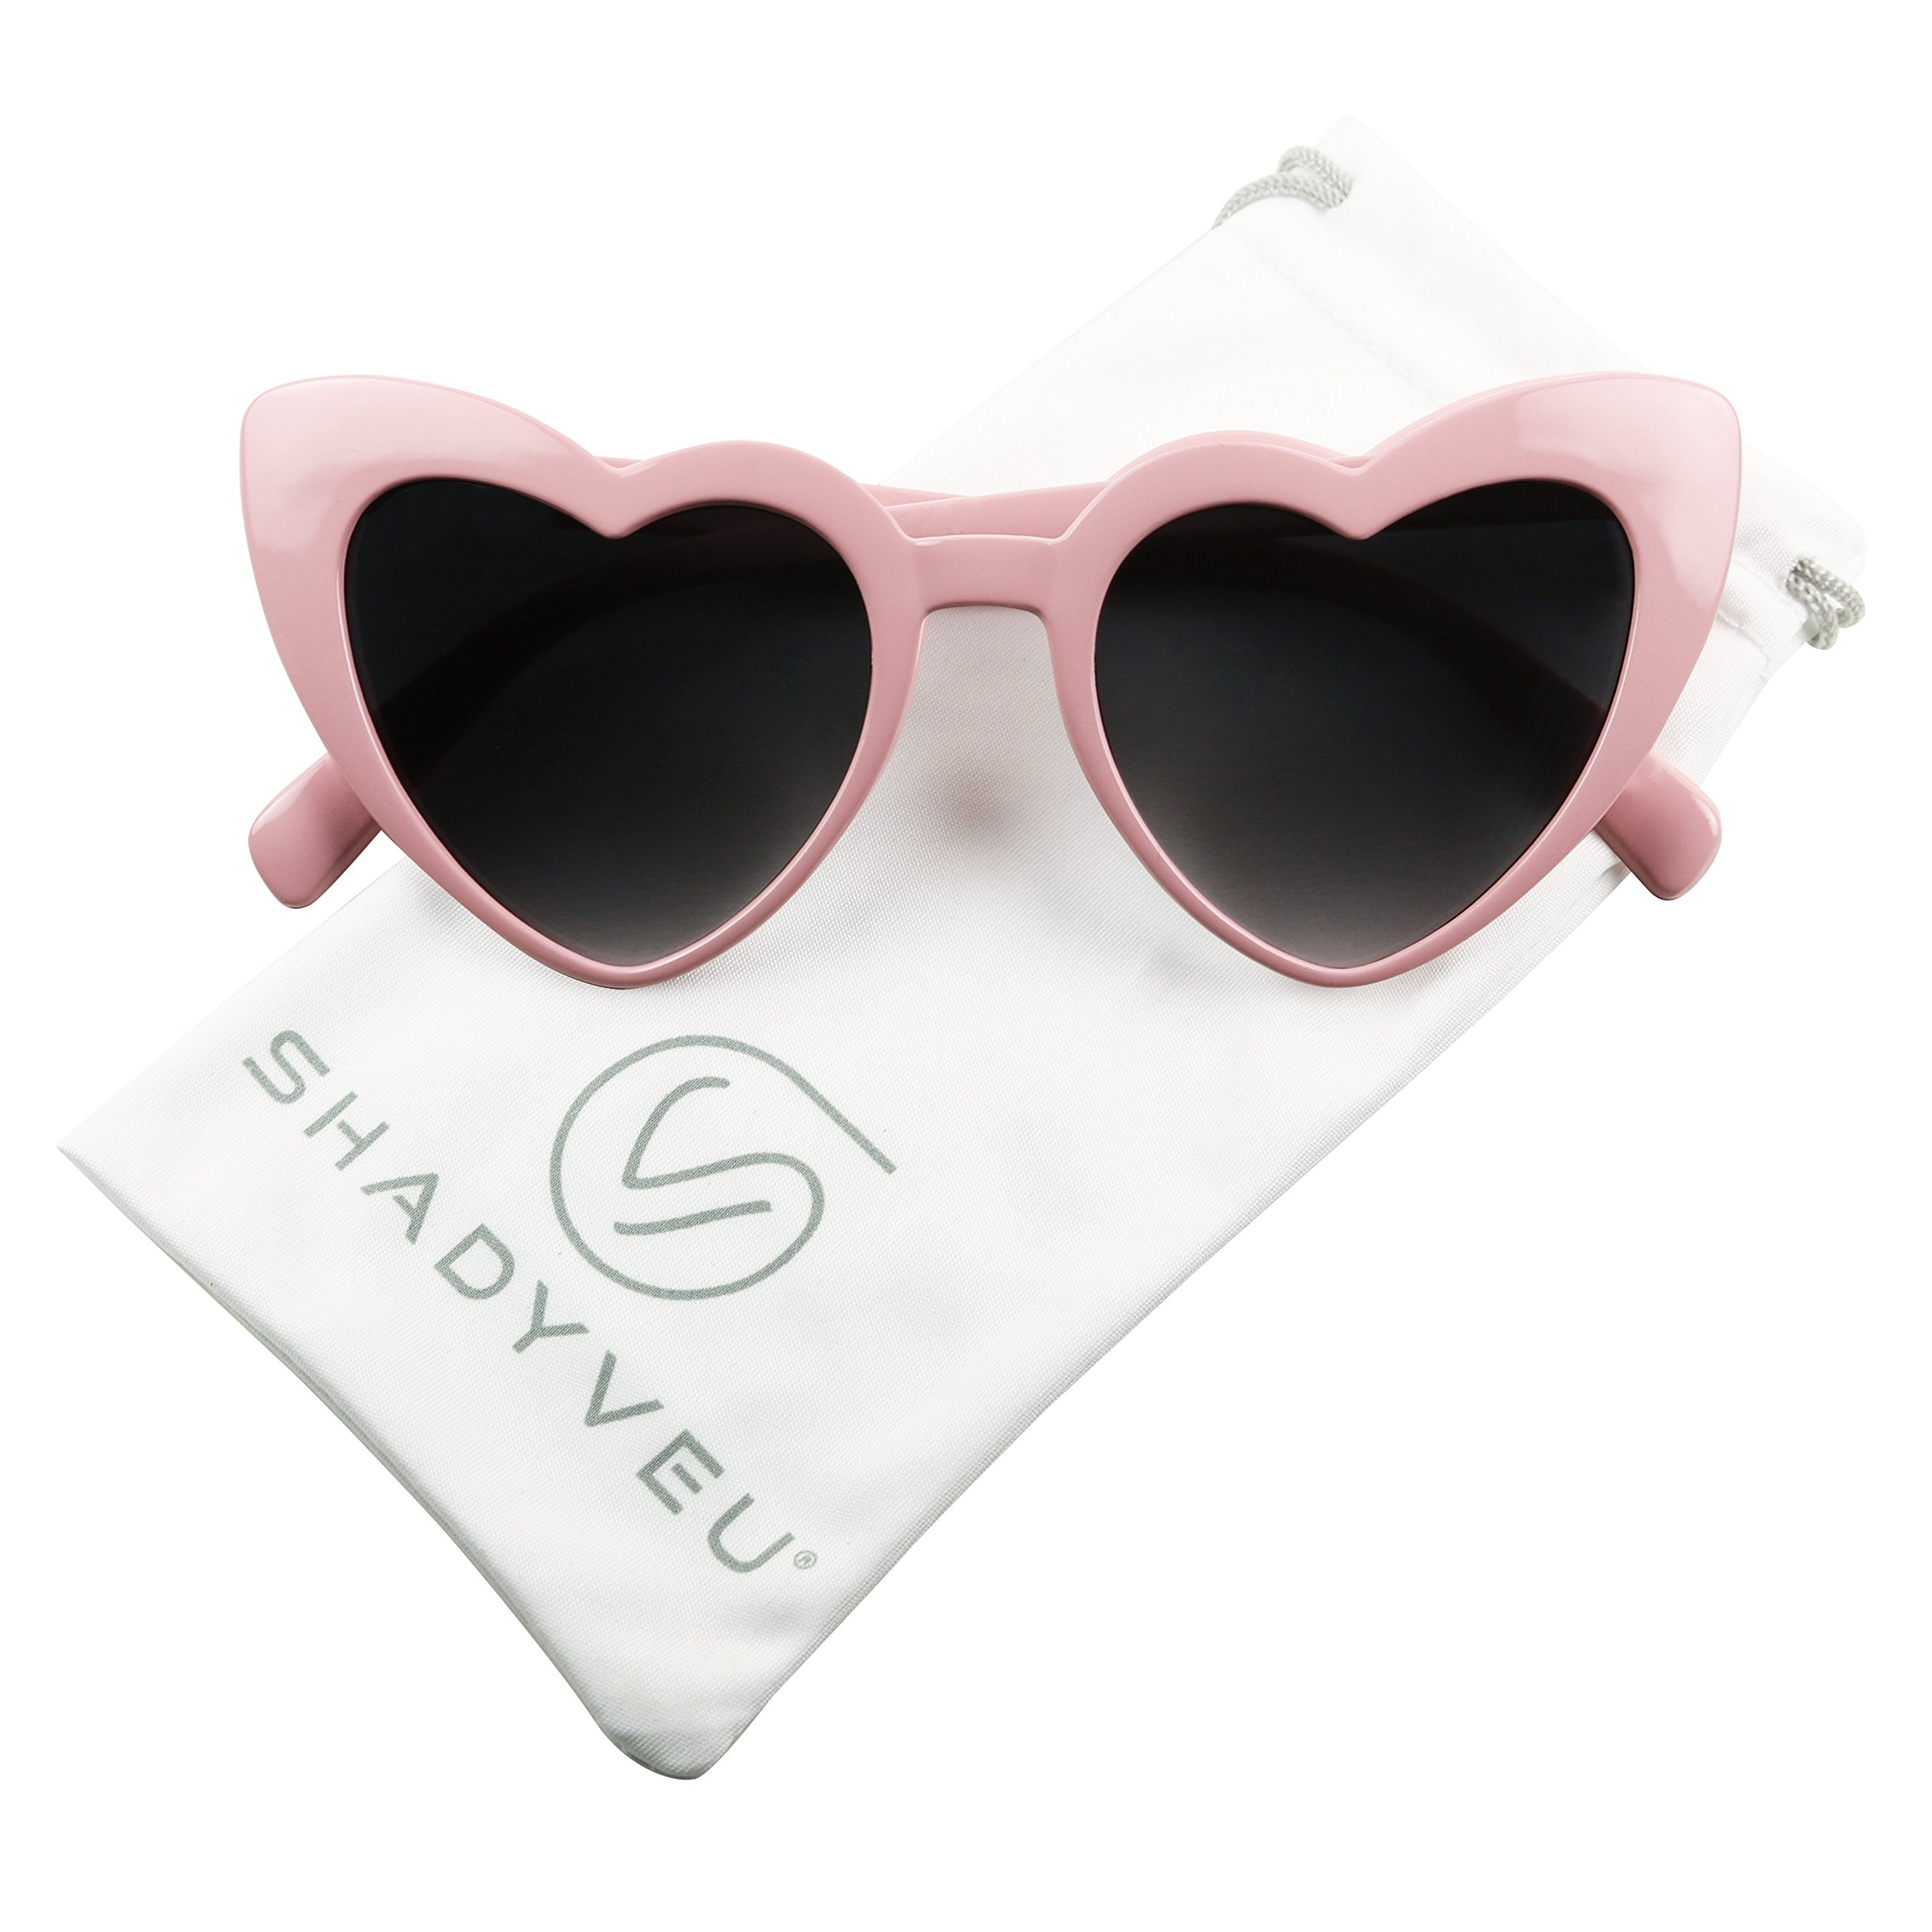 ShadyVEU - Chunky Love Heart Shaped Colorful Oversize High Tip Cute Sunglasses (Light Pink Frame, Black Lens)